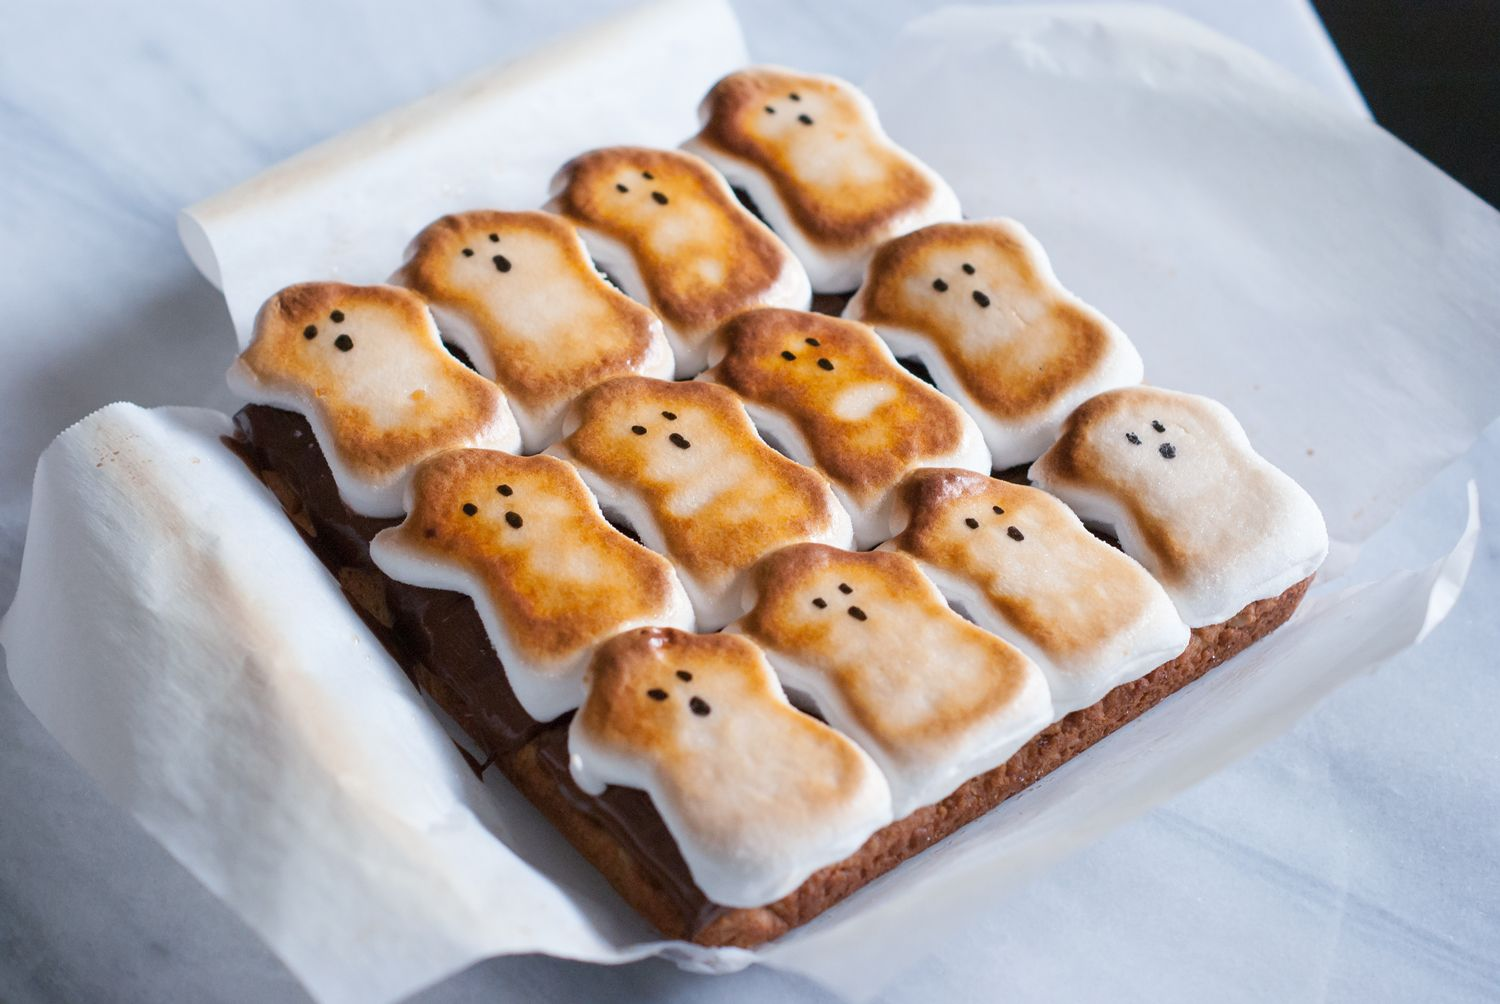 Ghost S'mores make a great Halloween treat.